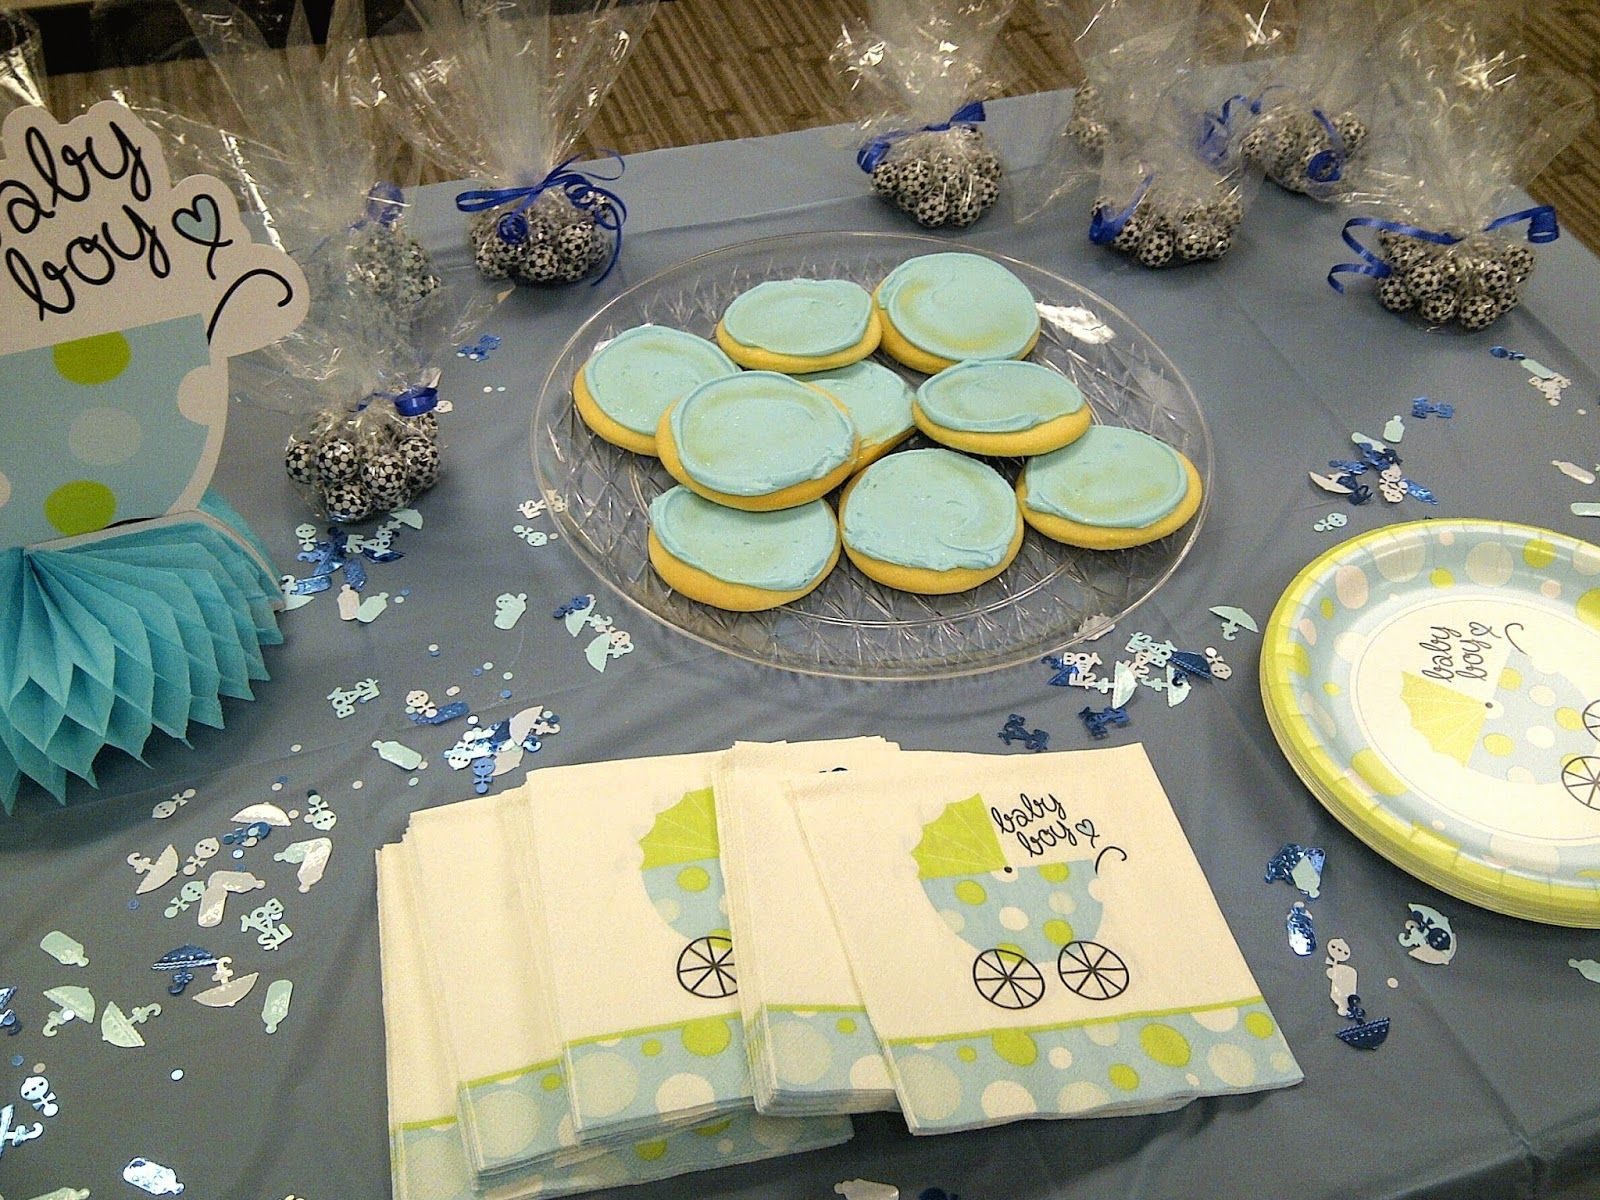 Glamorous For The Love Of Character: Work Baby Shower - Dollar Tree within Good quality Work Baby Shower